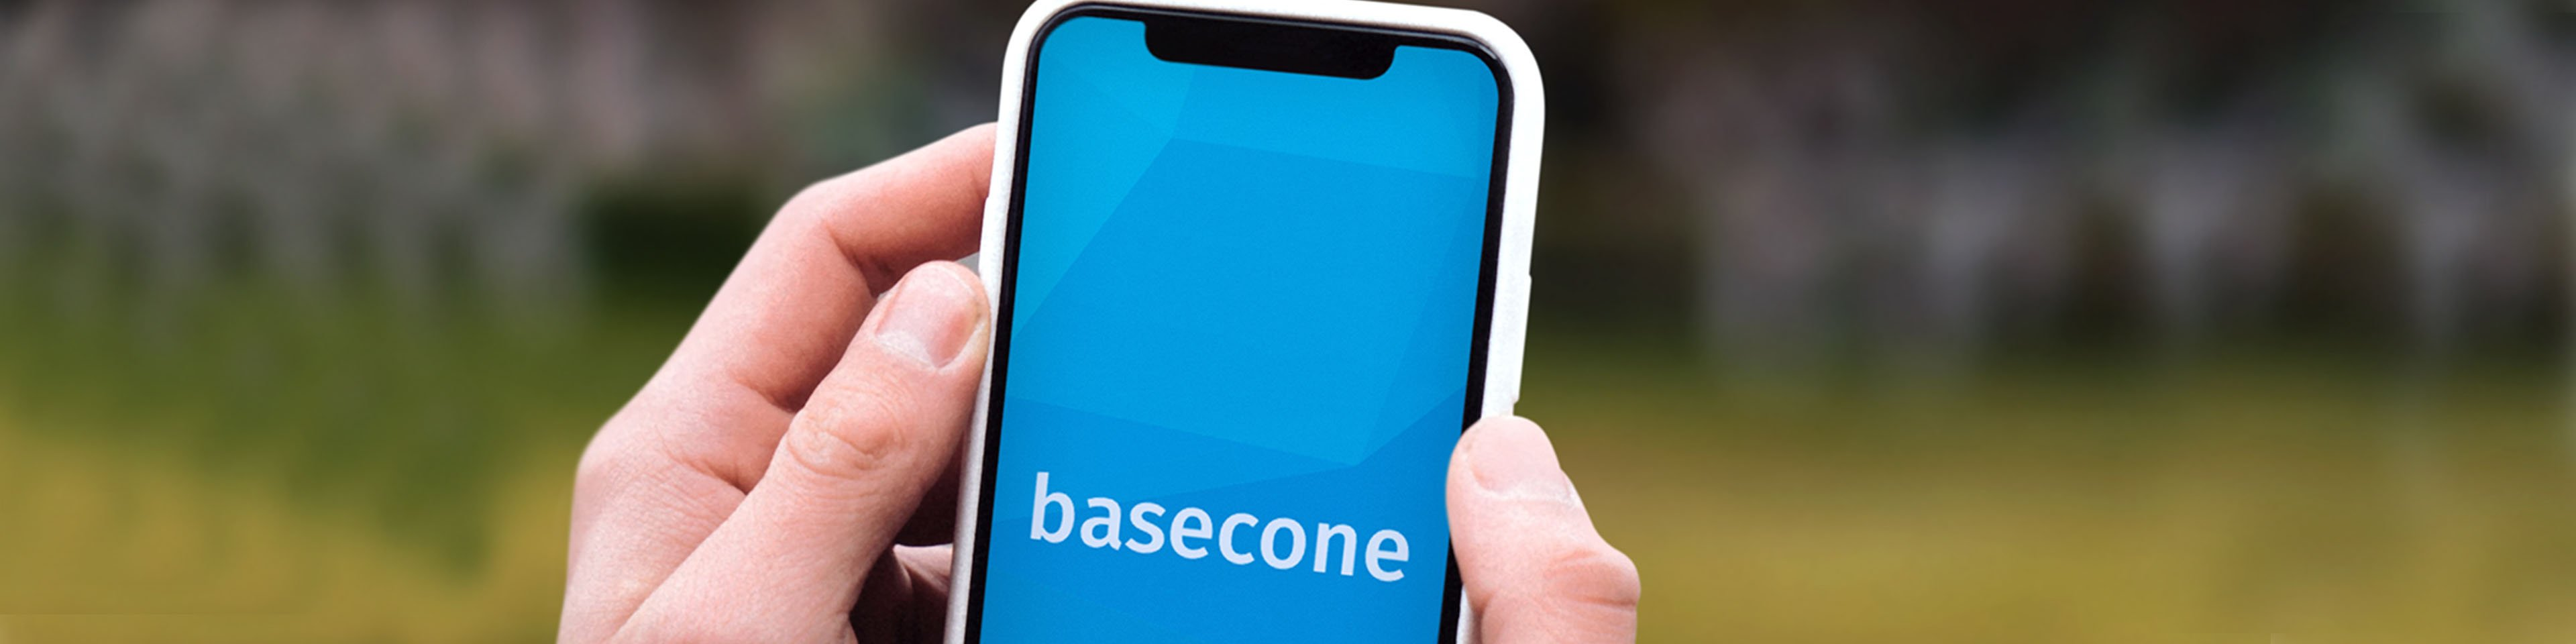 Basecone, the 100% cloud solution, launches latest Sage integration to meet the demand for real-time, automated data entry